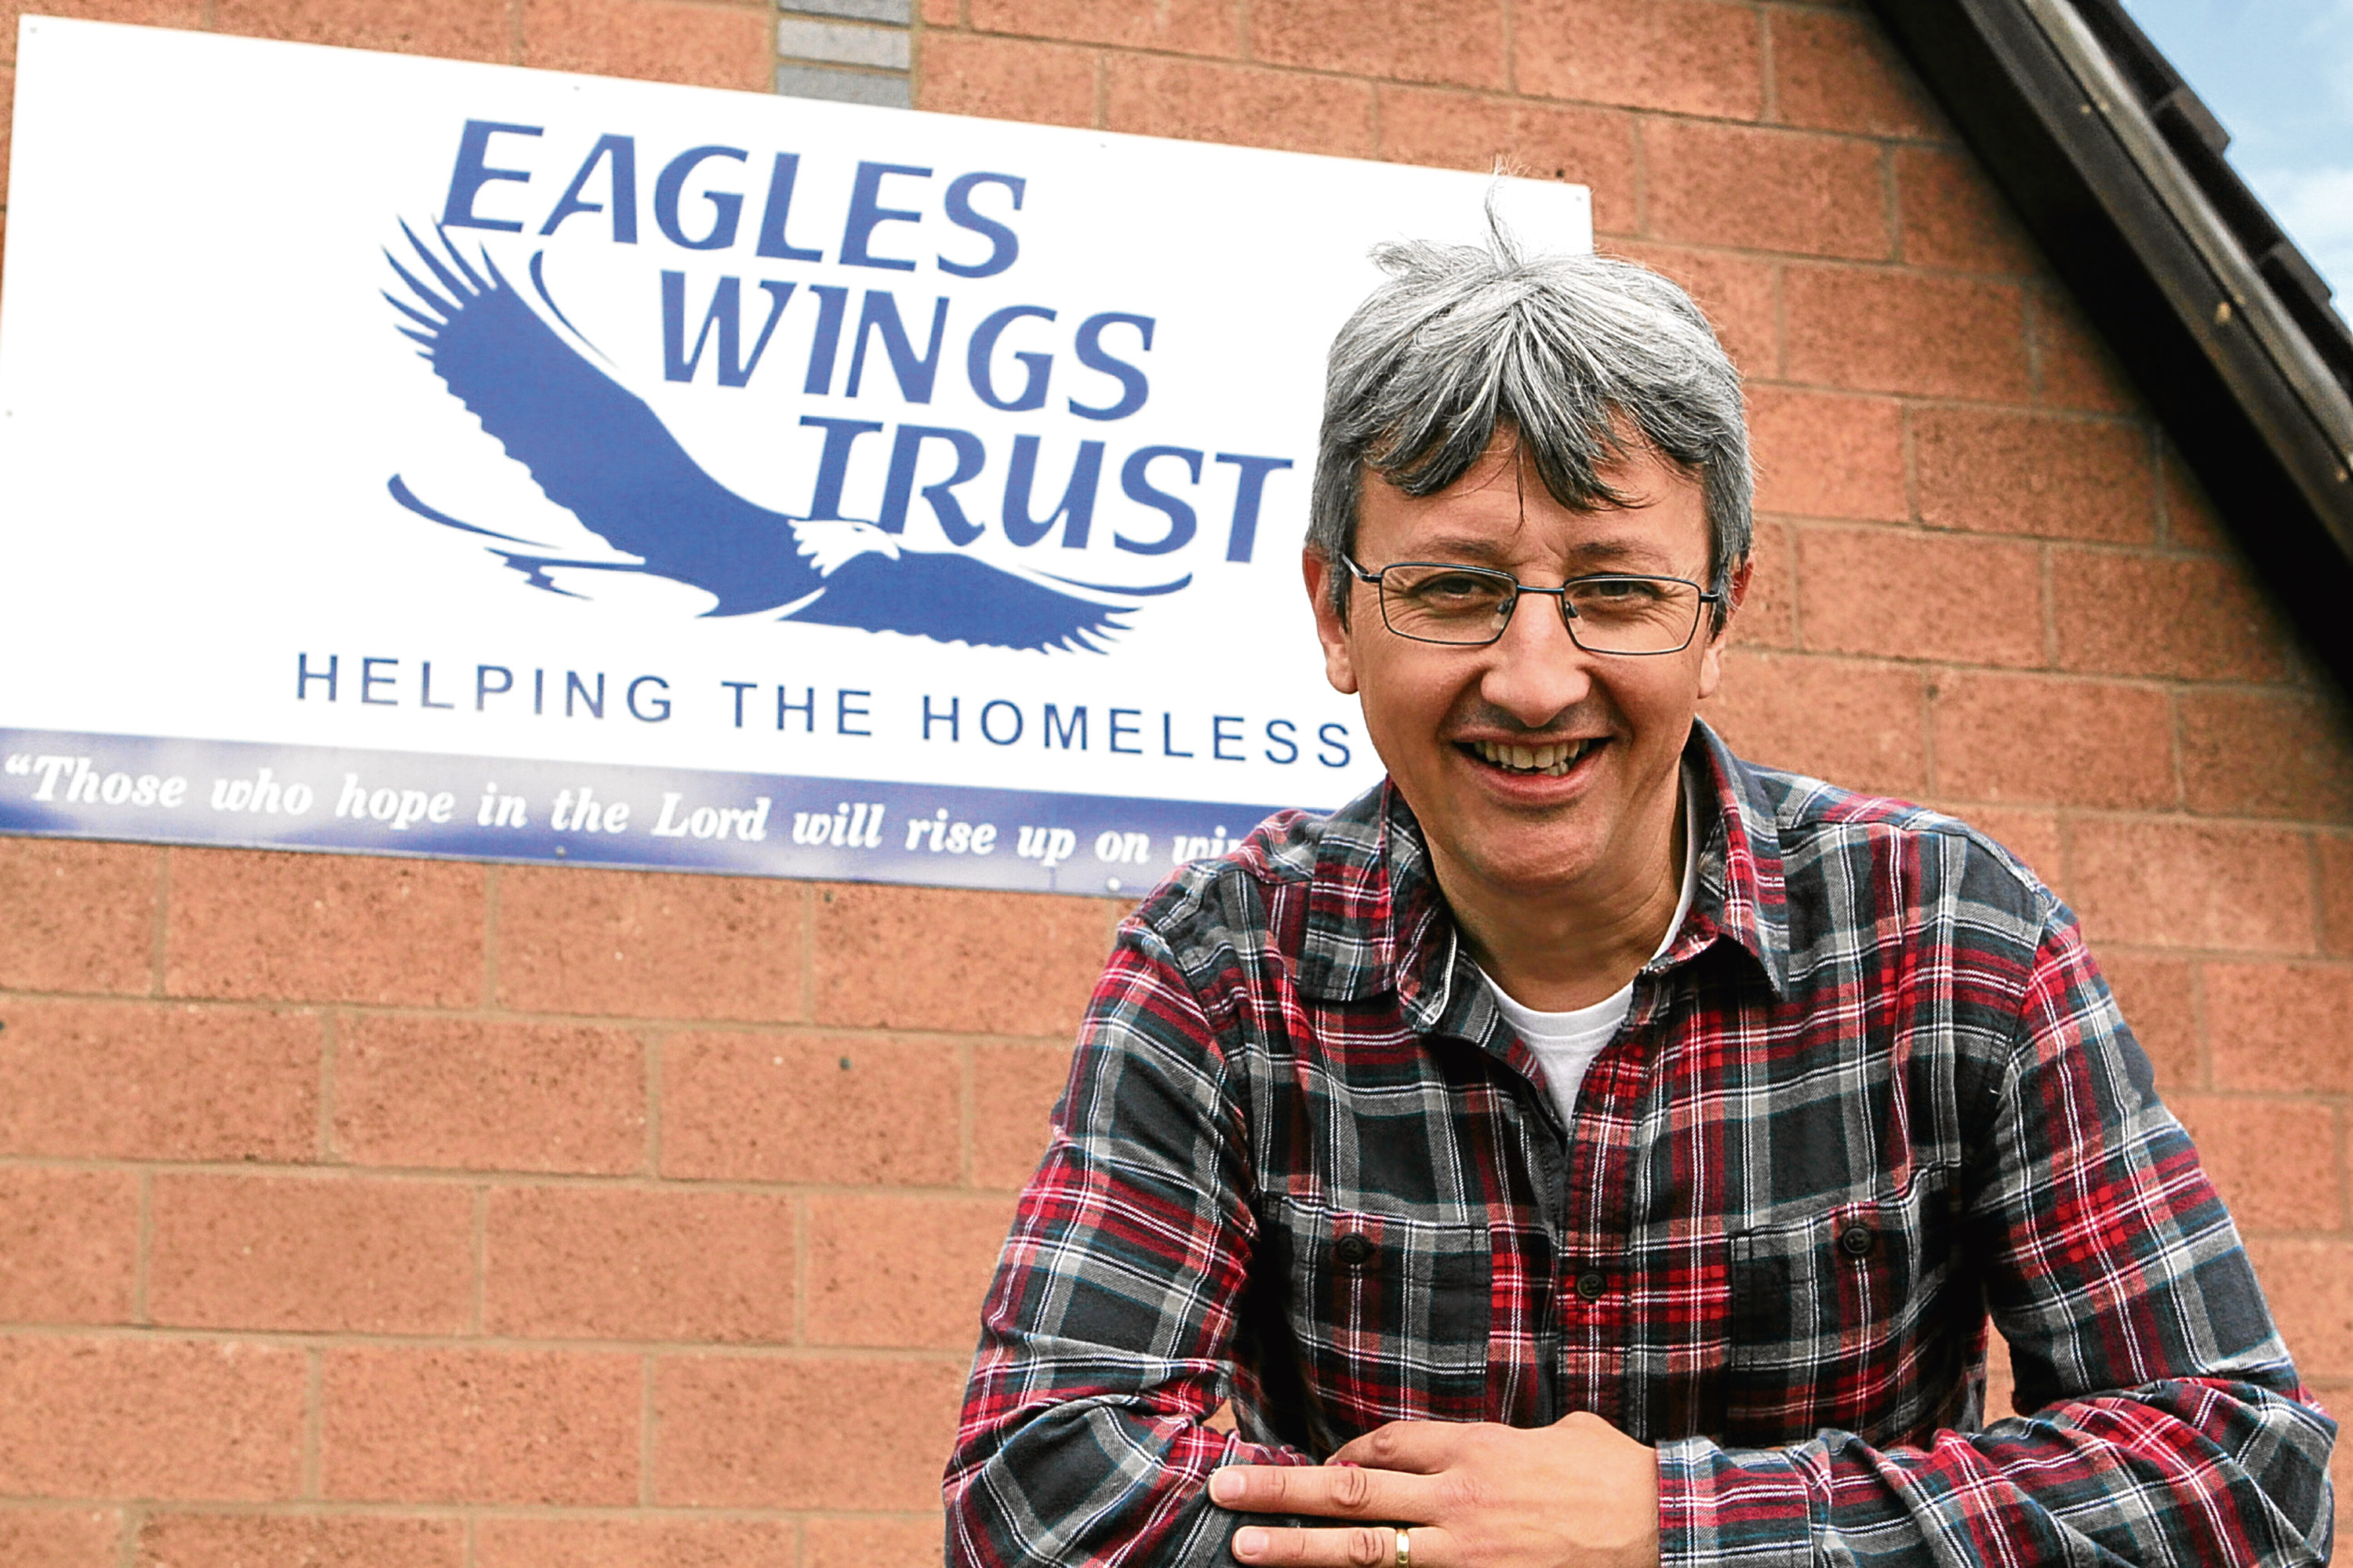 Mike Cordiner, of the Eagles Wings Trust, has spoken about the harsh realities of life on the streets for the city's addicts.